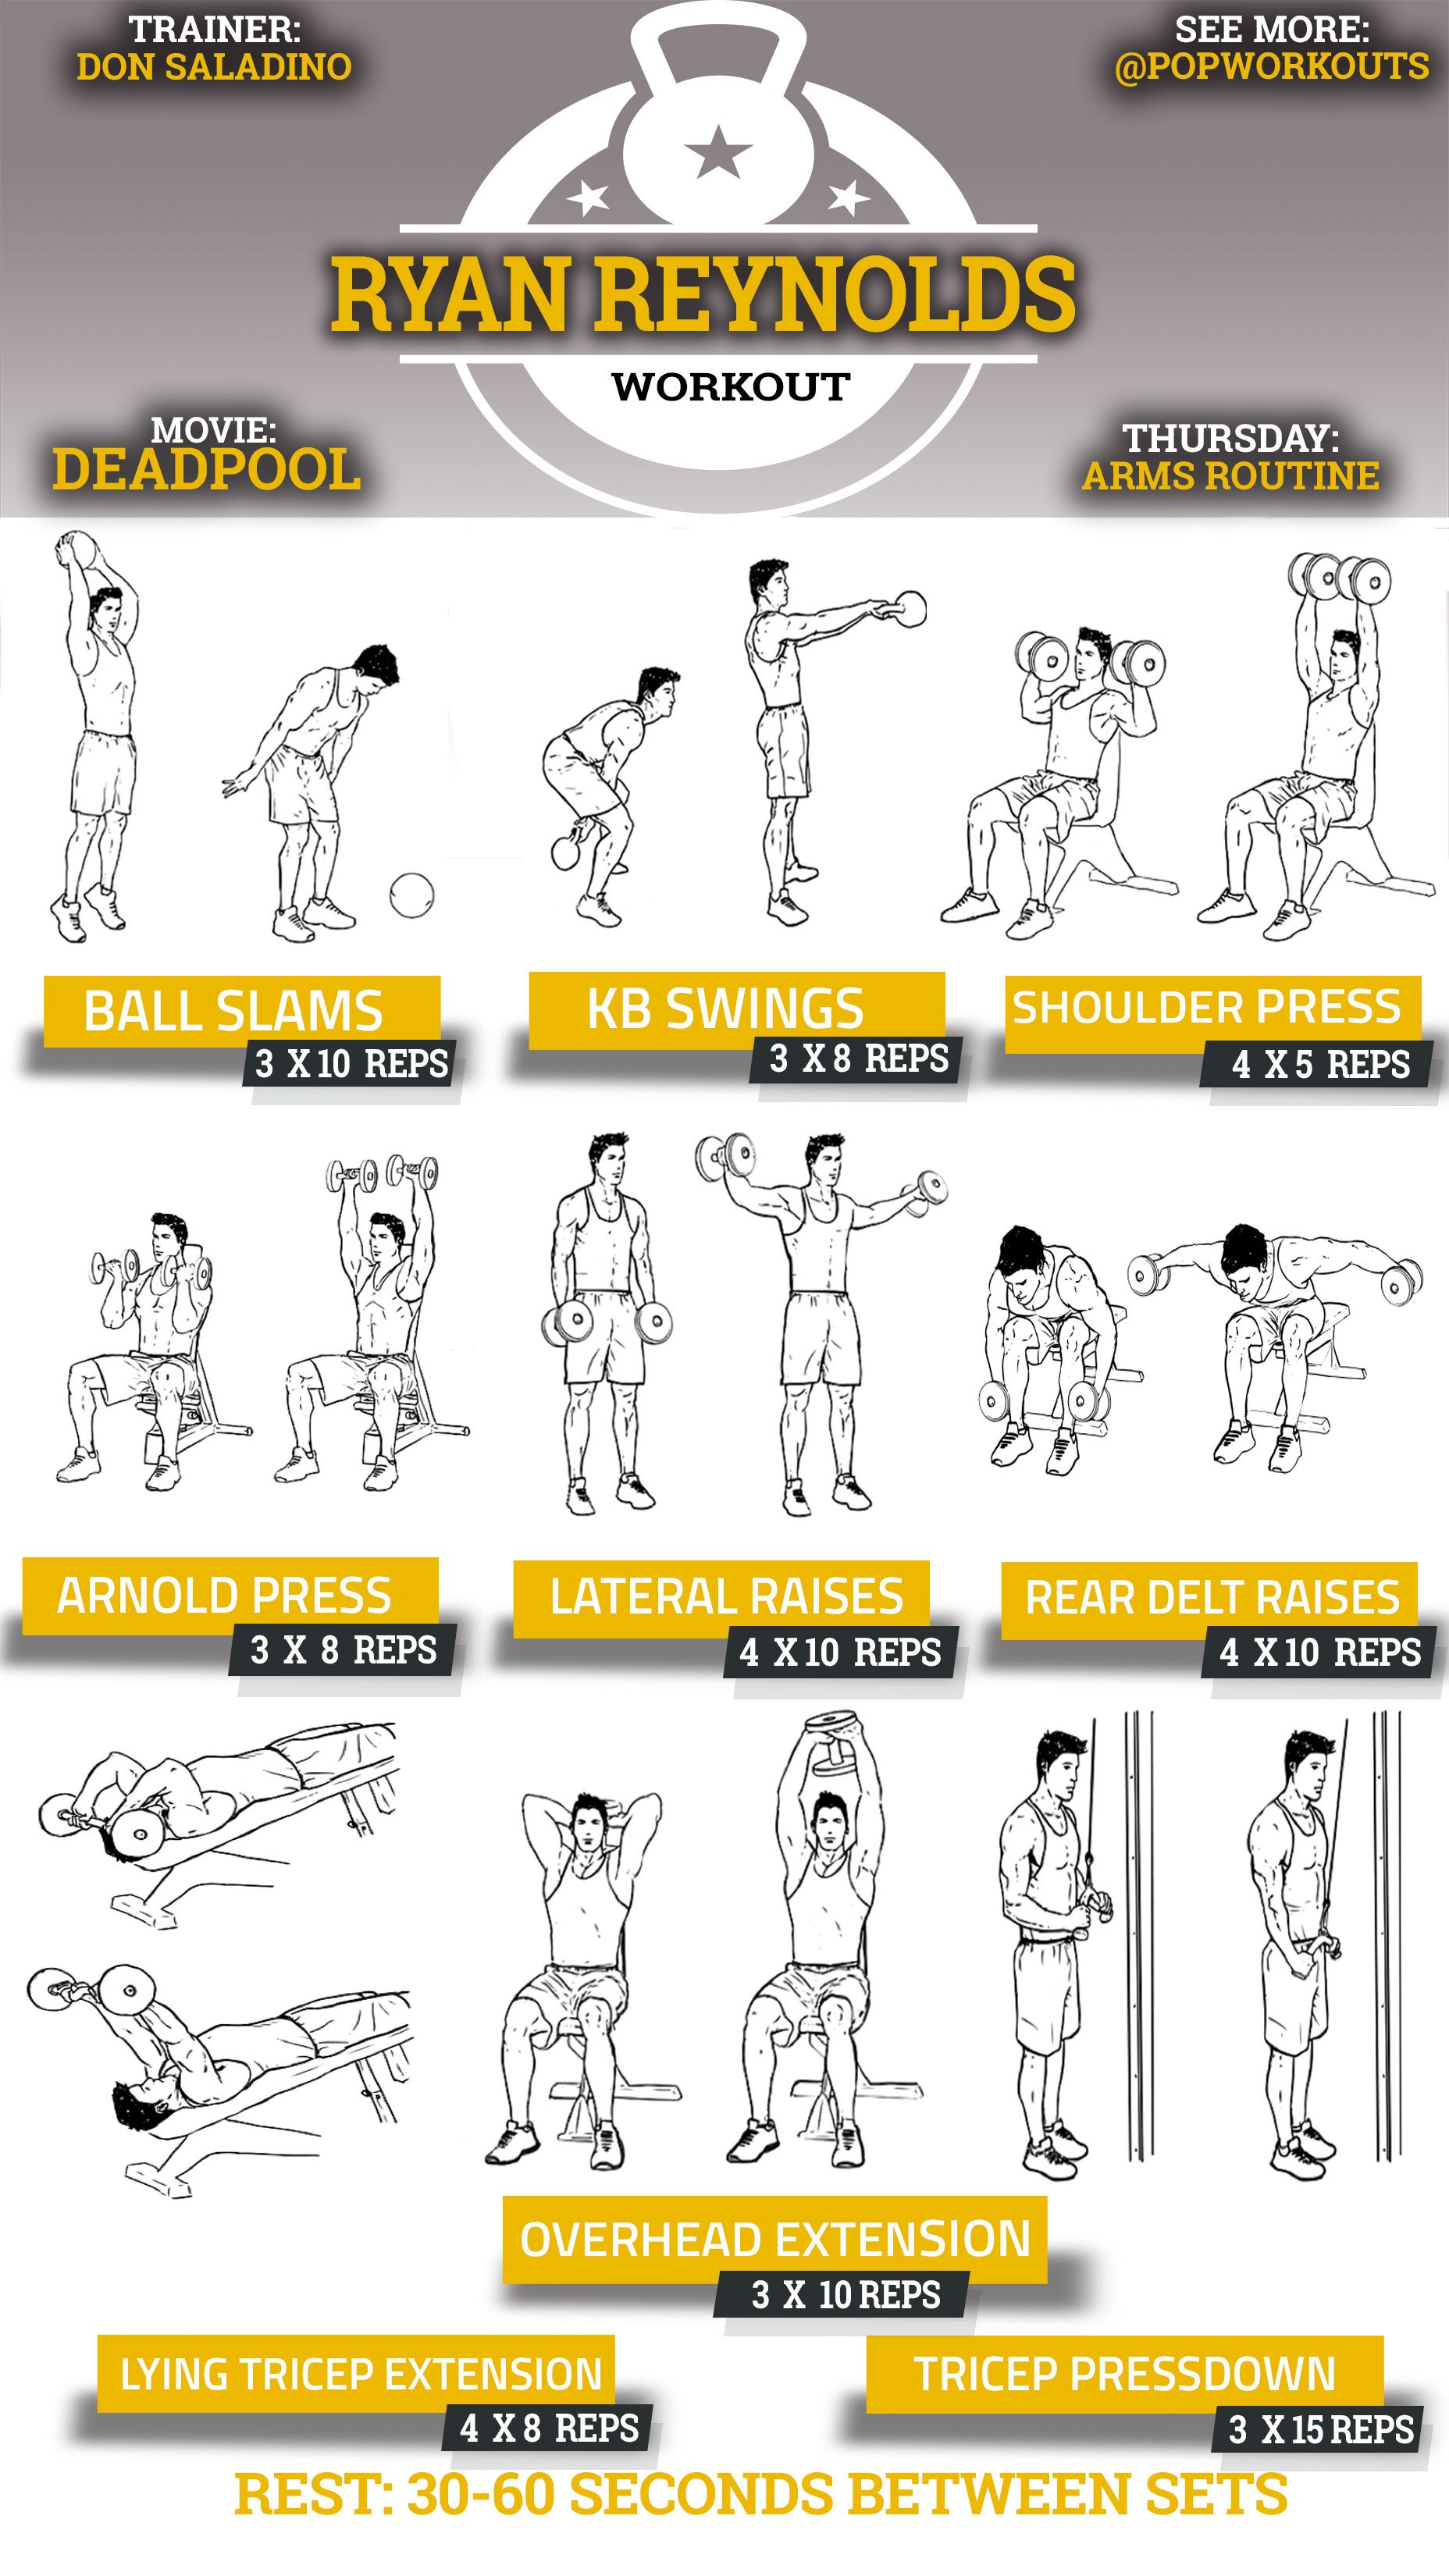 Gym Workout Chart For Chest For Men Ryan Reynolds Deadpool Routine Arms Workout Chart